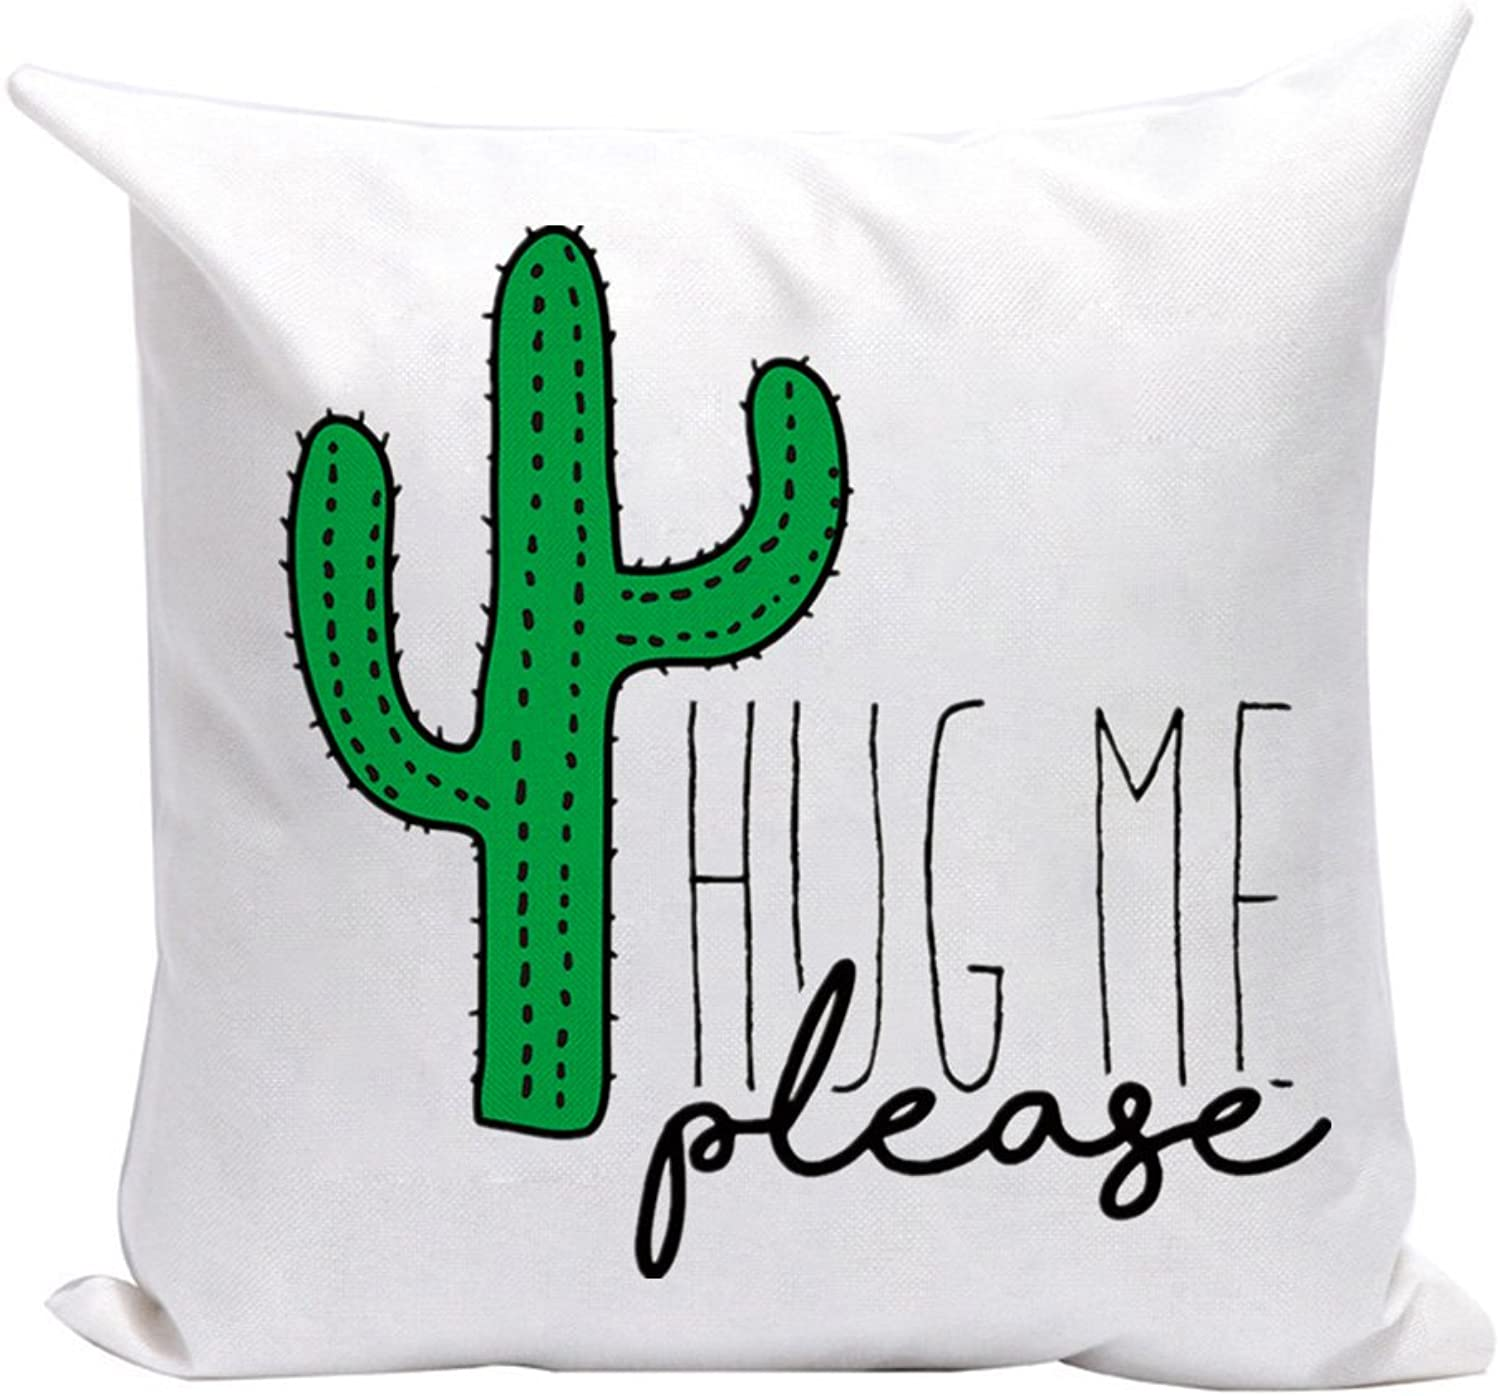 Aremazing Funny Quote White Linen Home Decor Pillowcase Throw Pillow Cushion Cover Words Sofa Couch 18 x 18 inches (Please Hug Me Cactus)